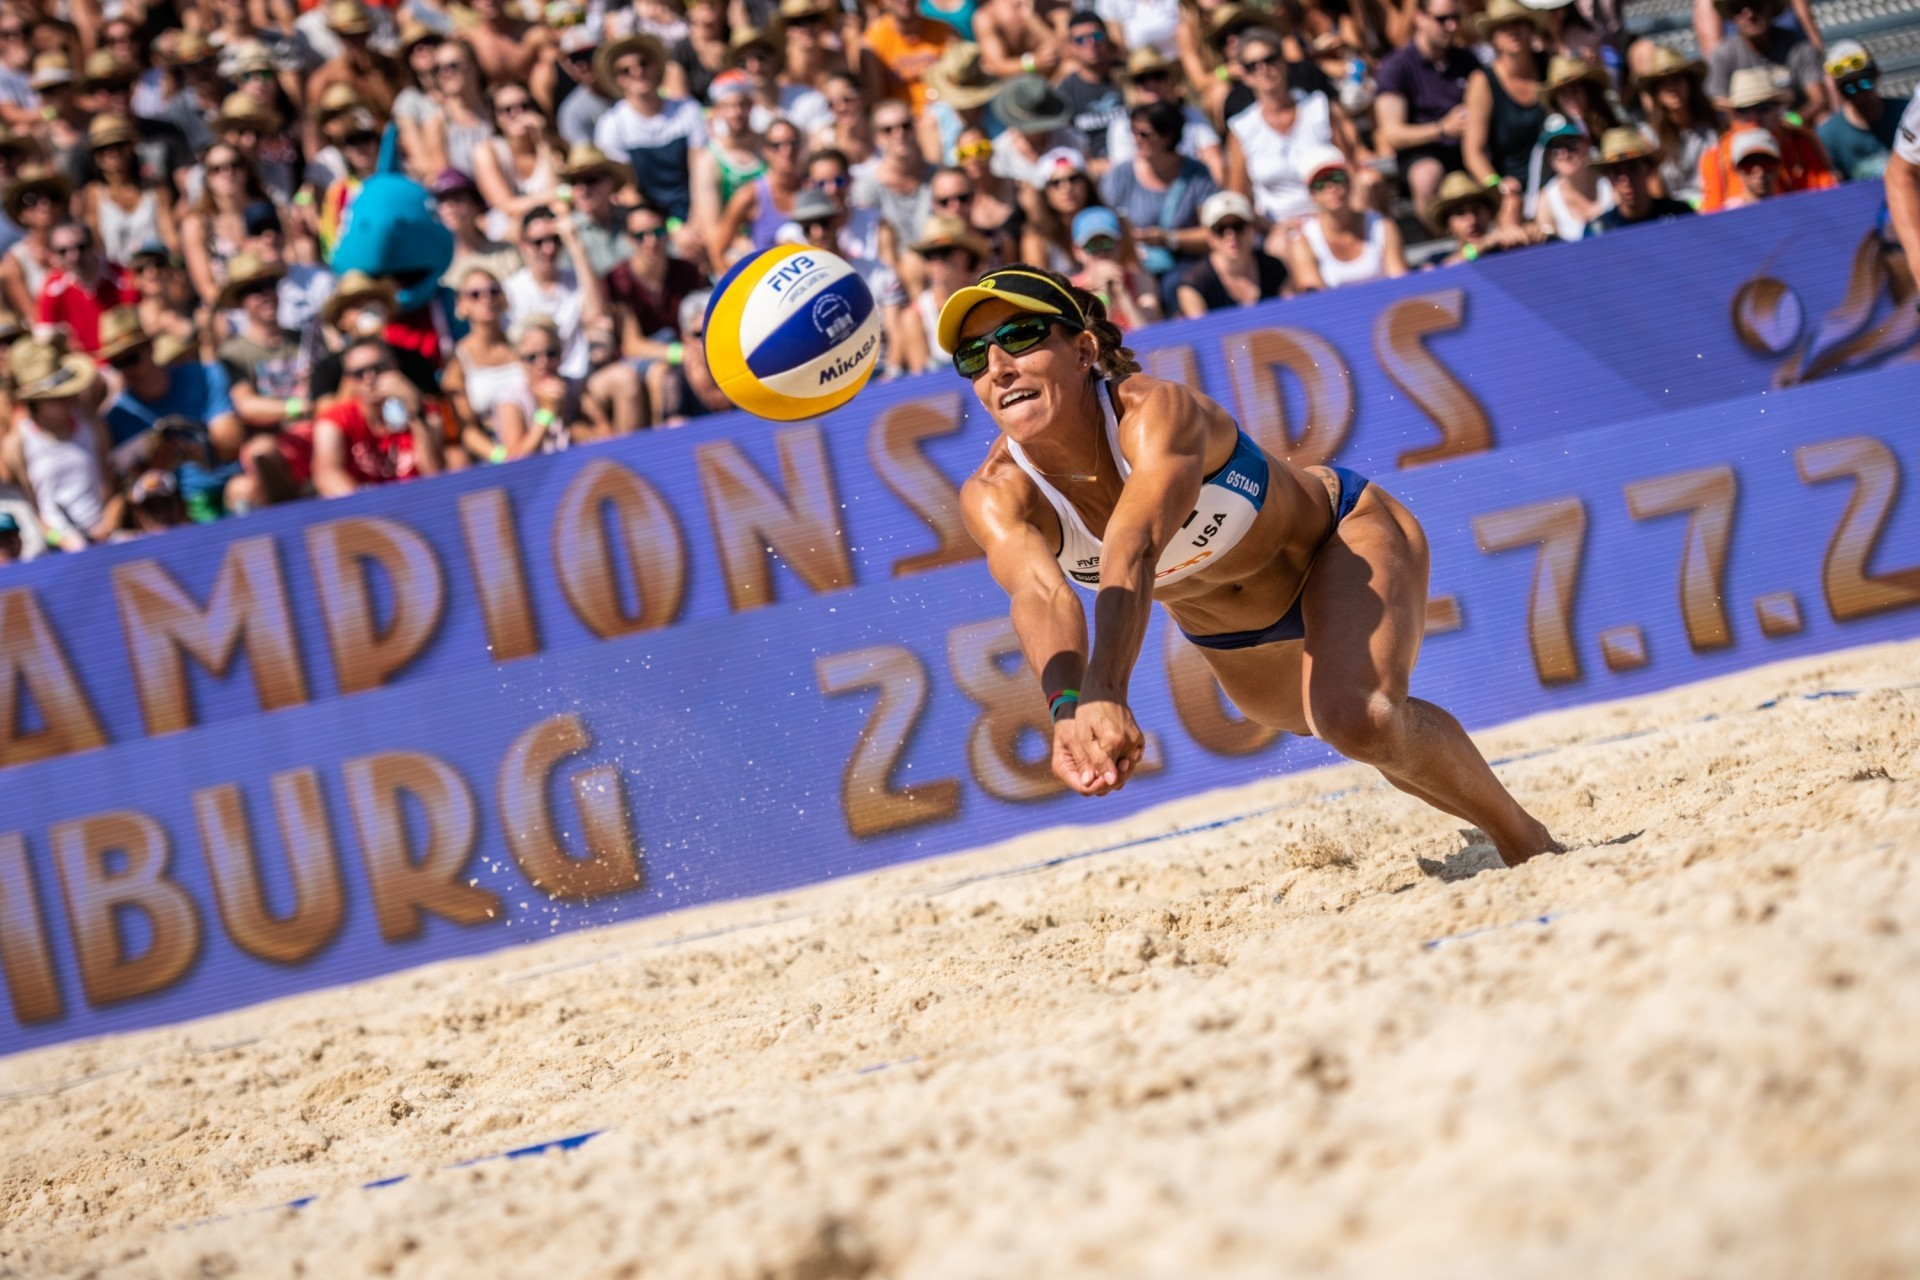 Emily Stockman and partner Kelley Larsen will compete this weekend at the American AVP